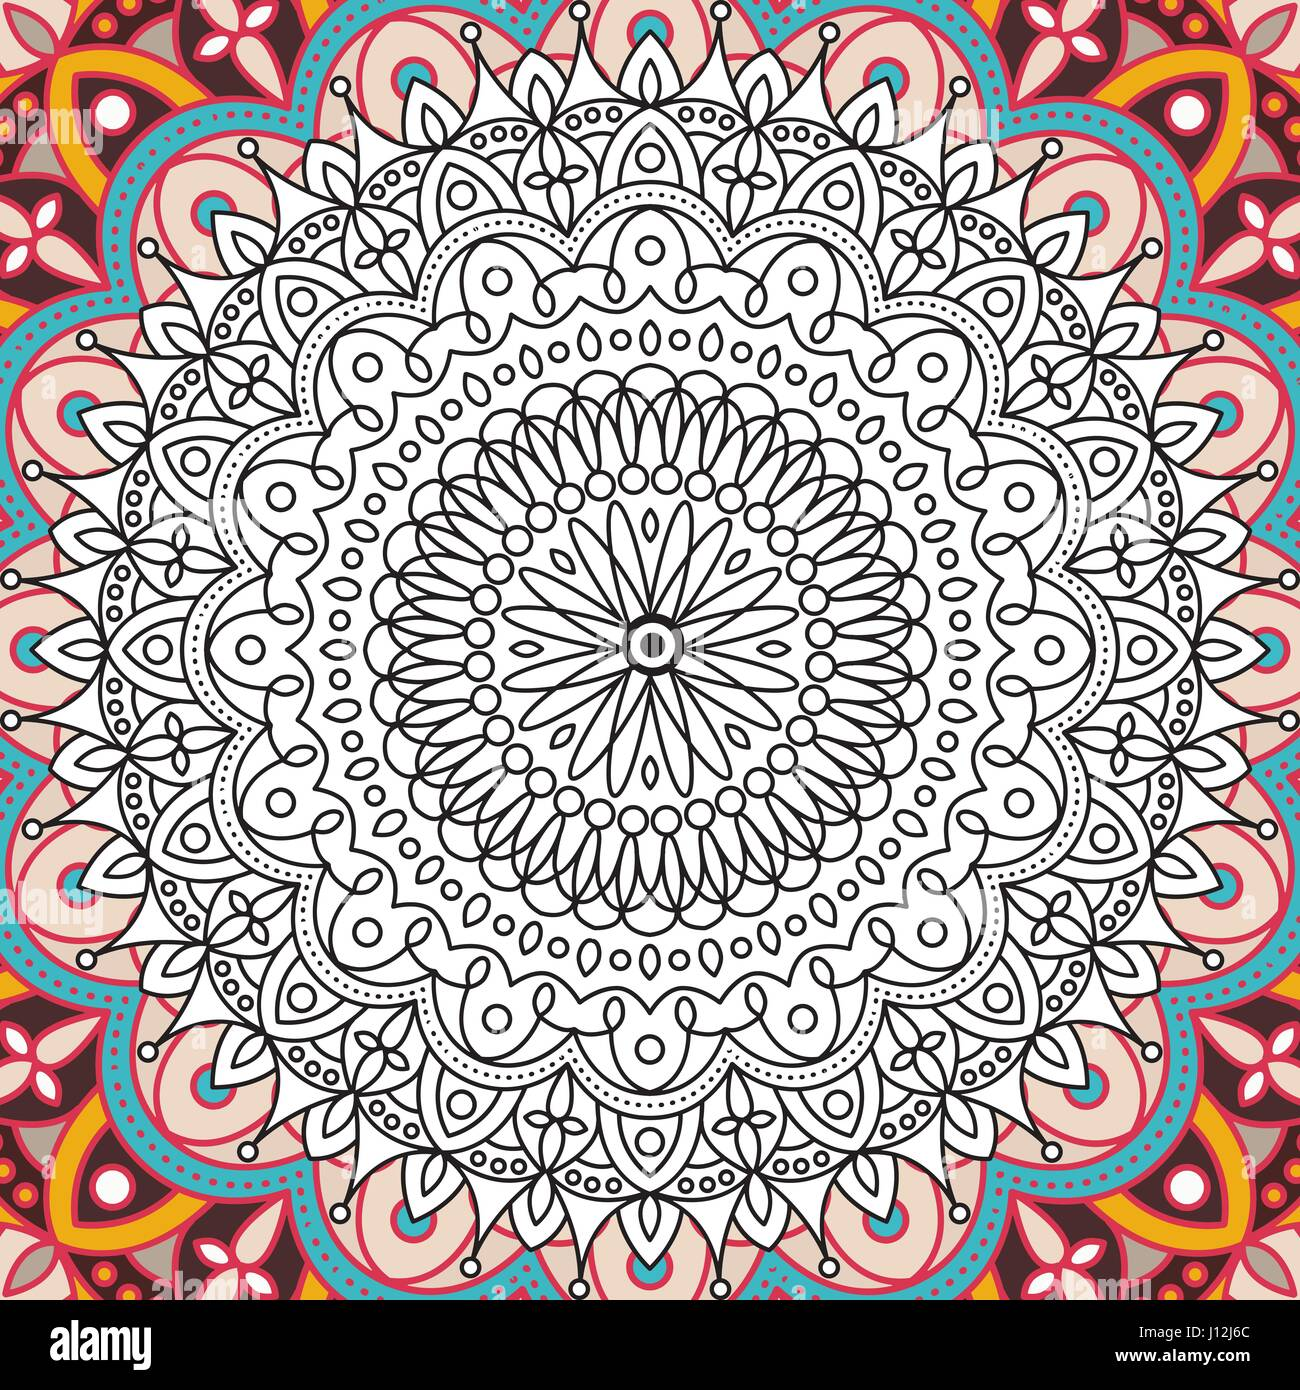 Printable Coloring Book Page For Adults Mandala Design